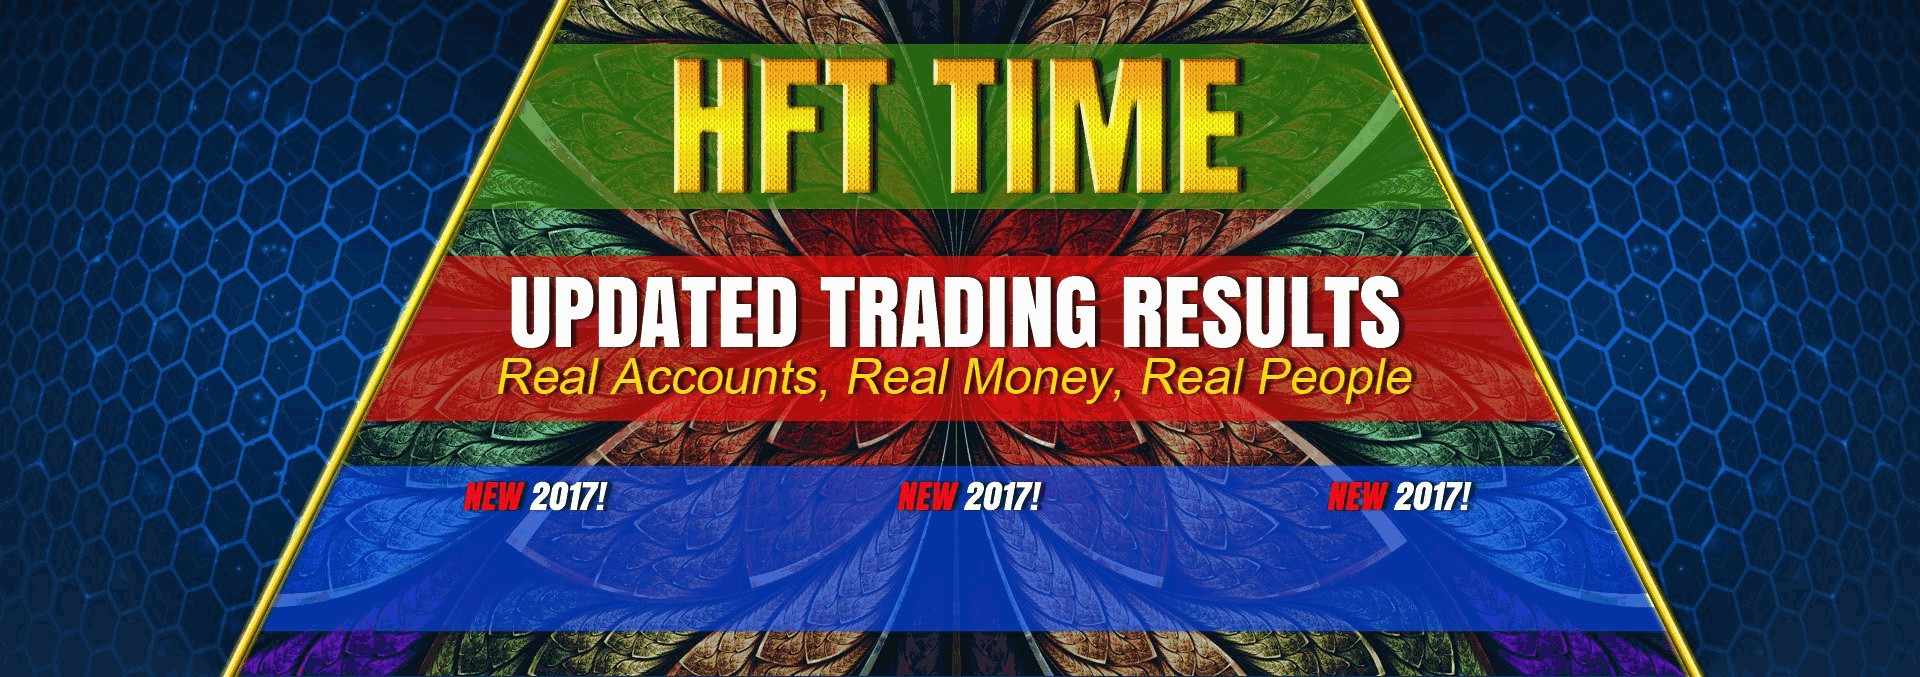 Hft group forex